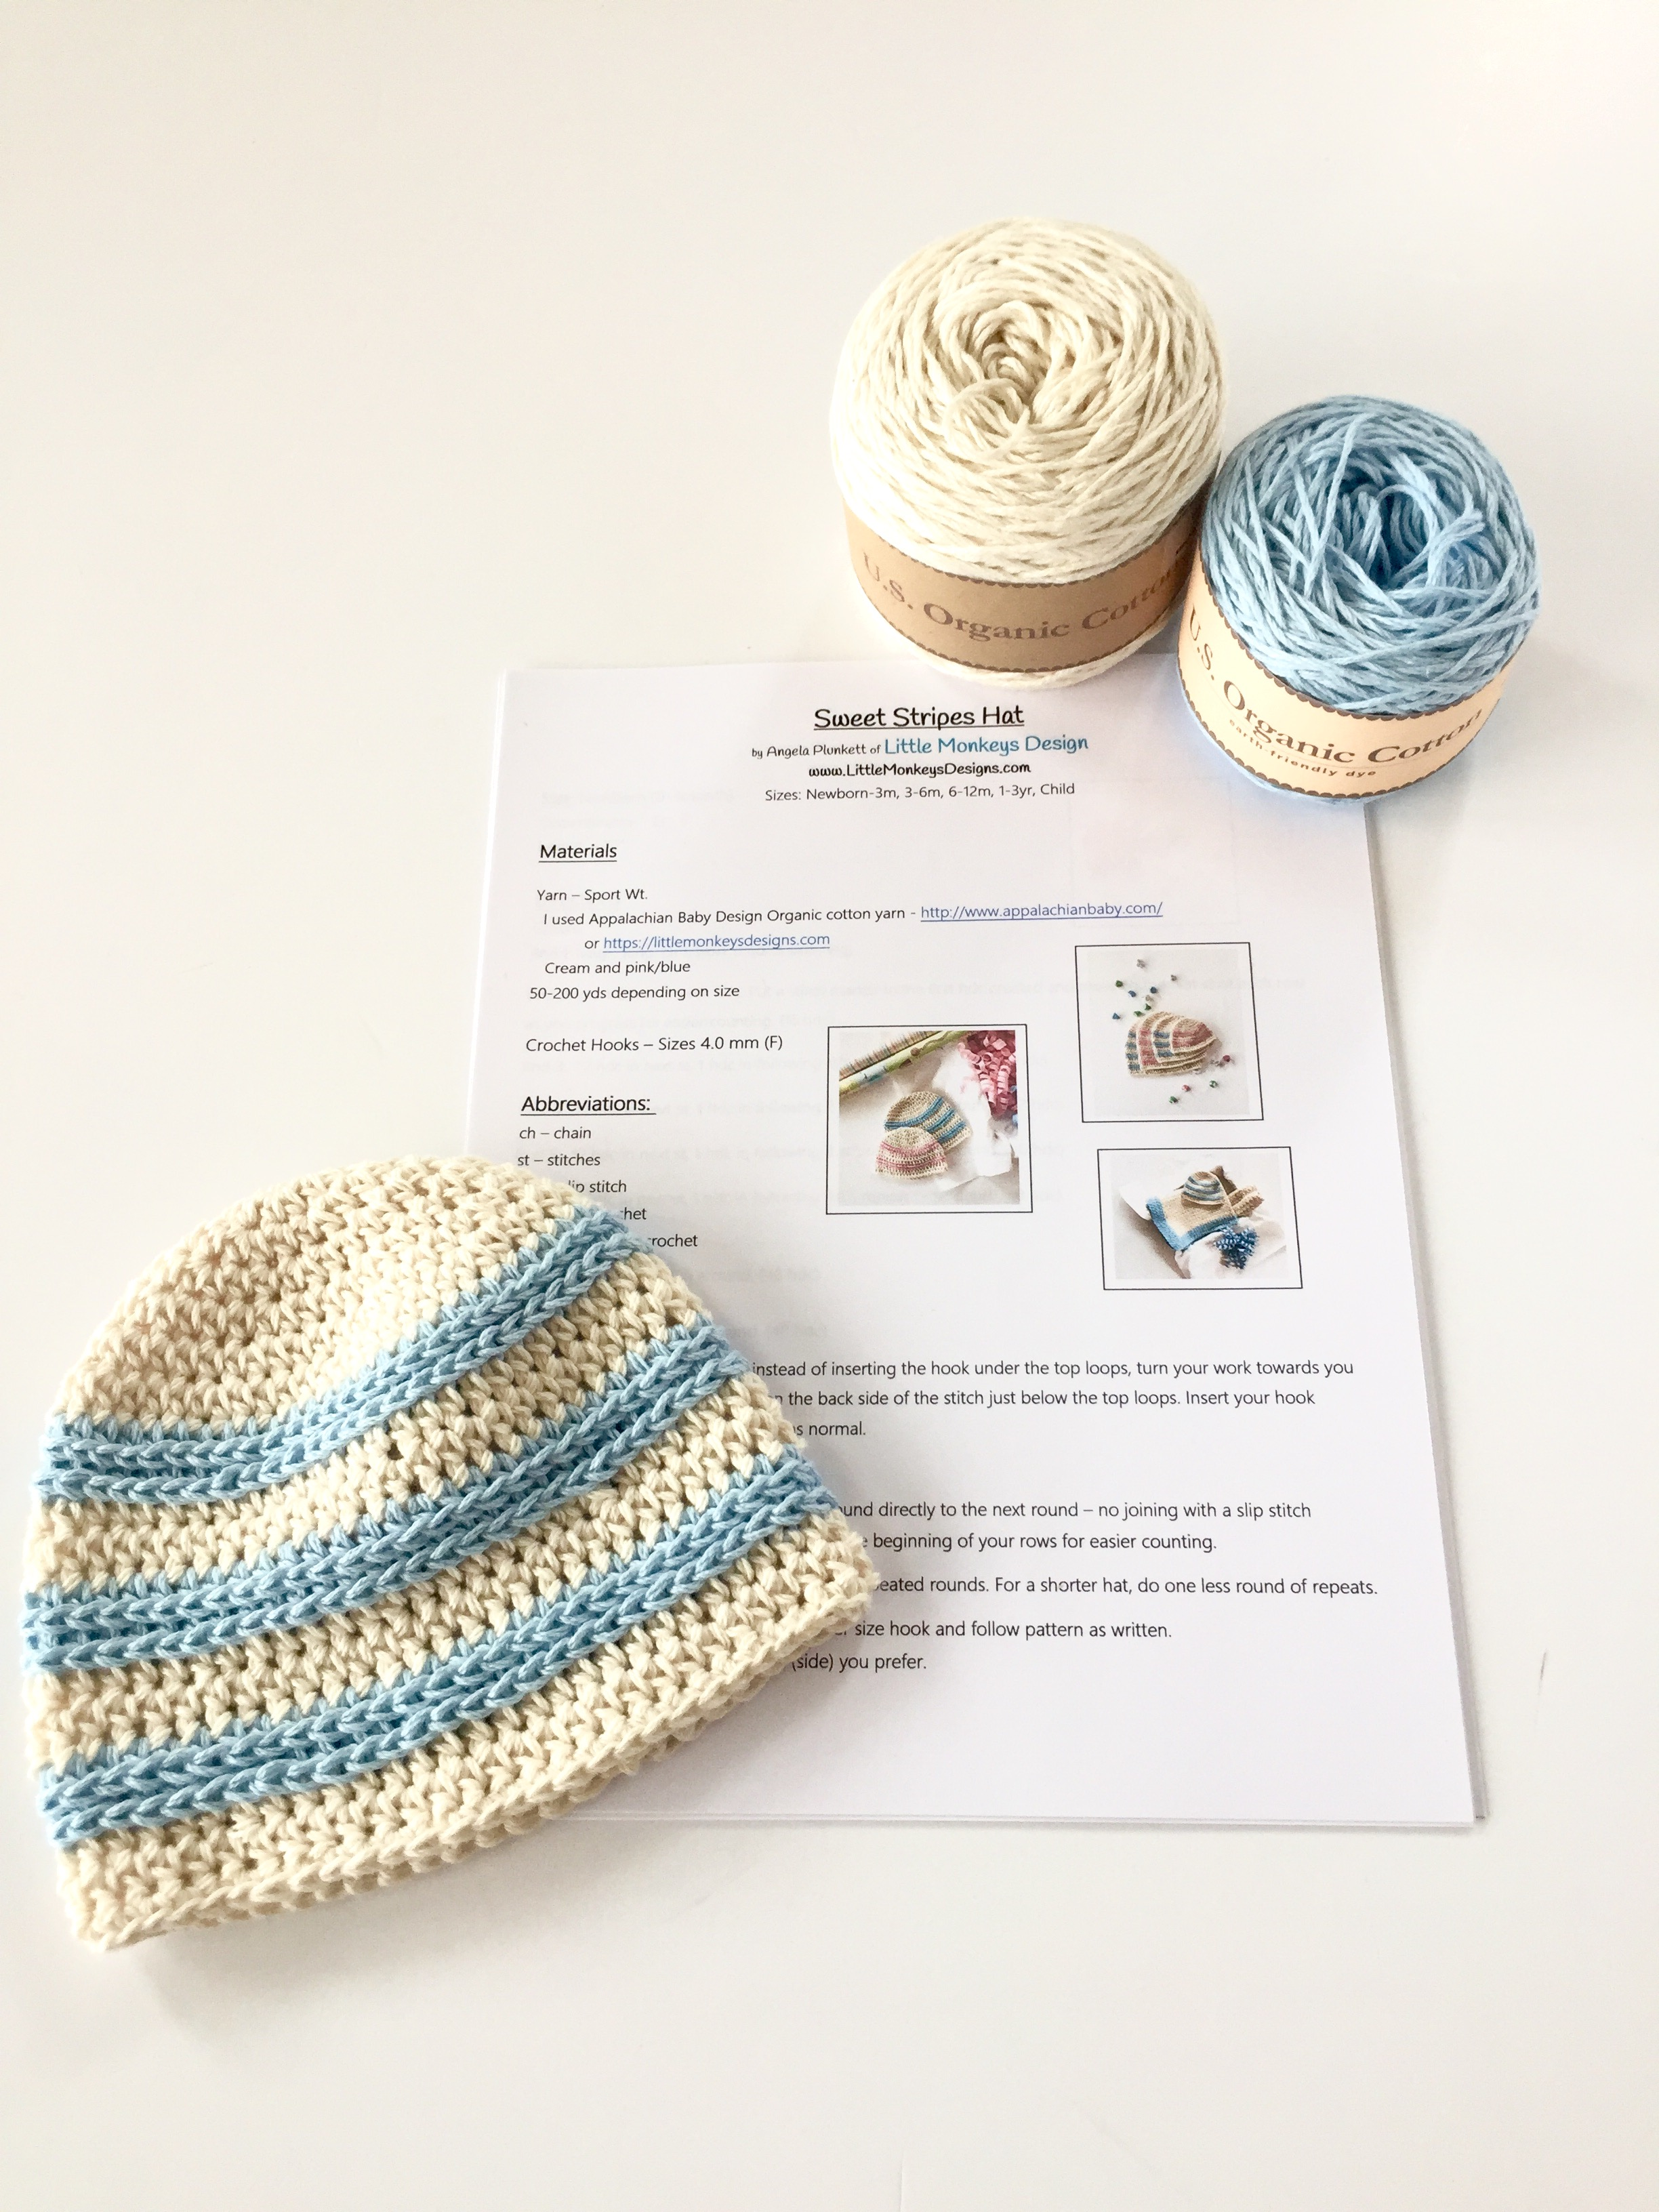 95b6c78a5 Organic Cotton Baby Hat Kit by Little Monkeys Design